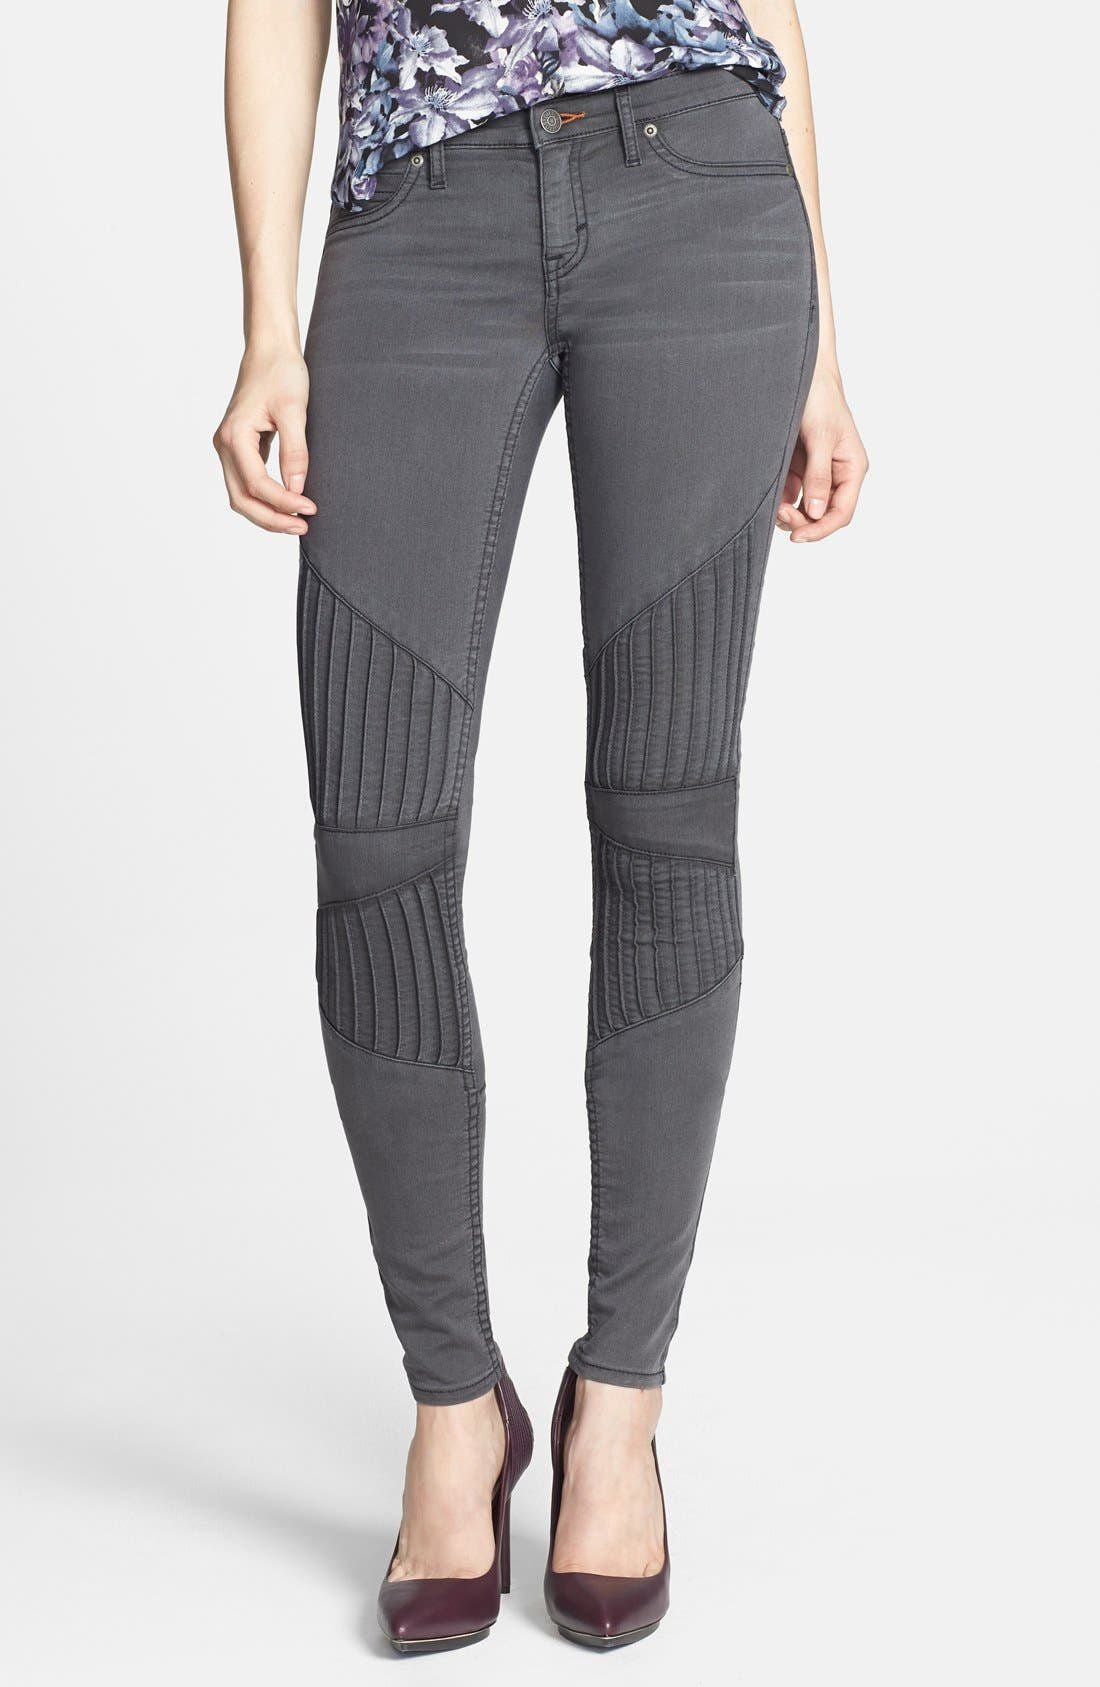 Alternate Image 1 Selected - Dittos Seamed Moto Skinny Jeans (Grey Black Doheny)